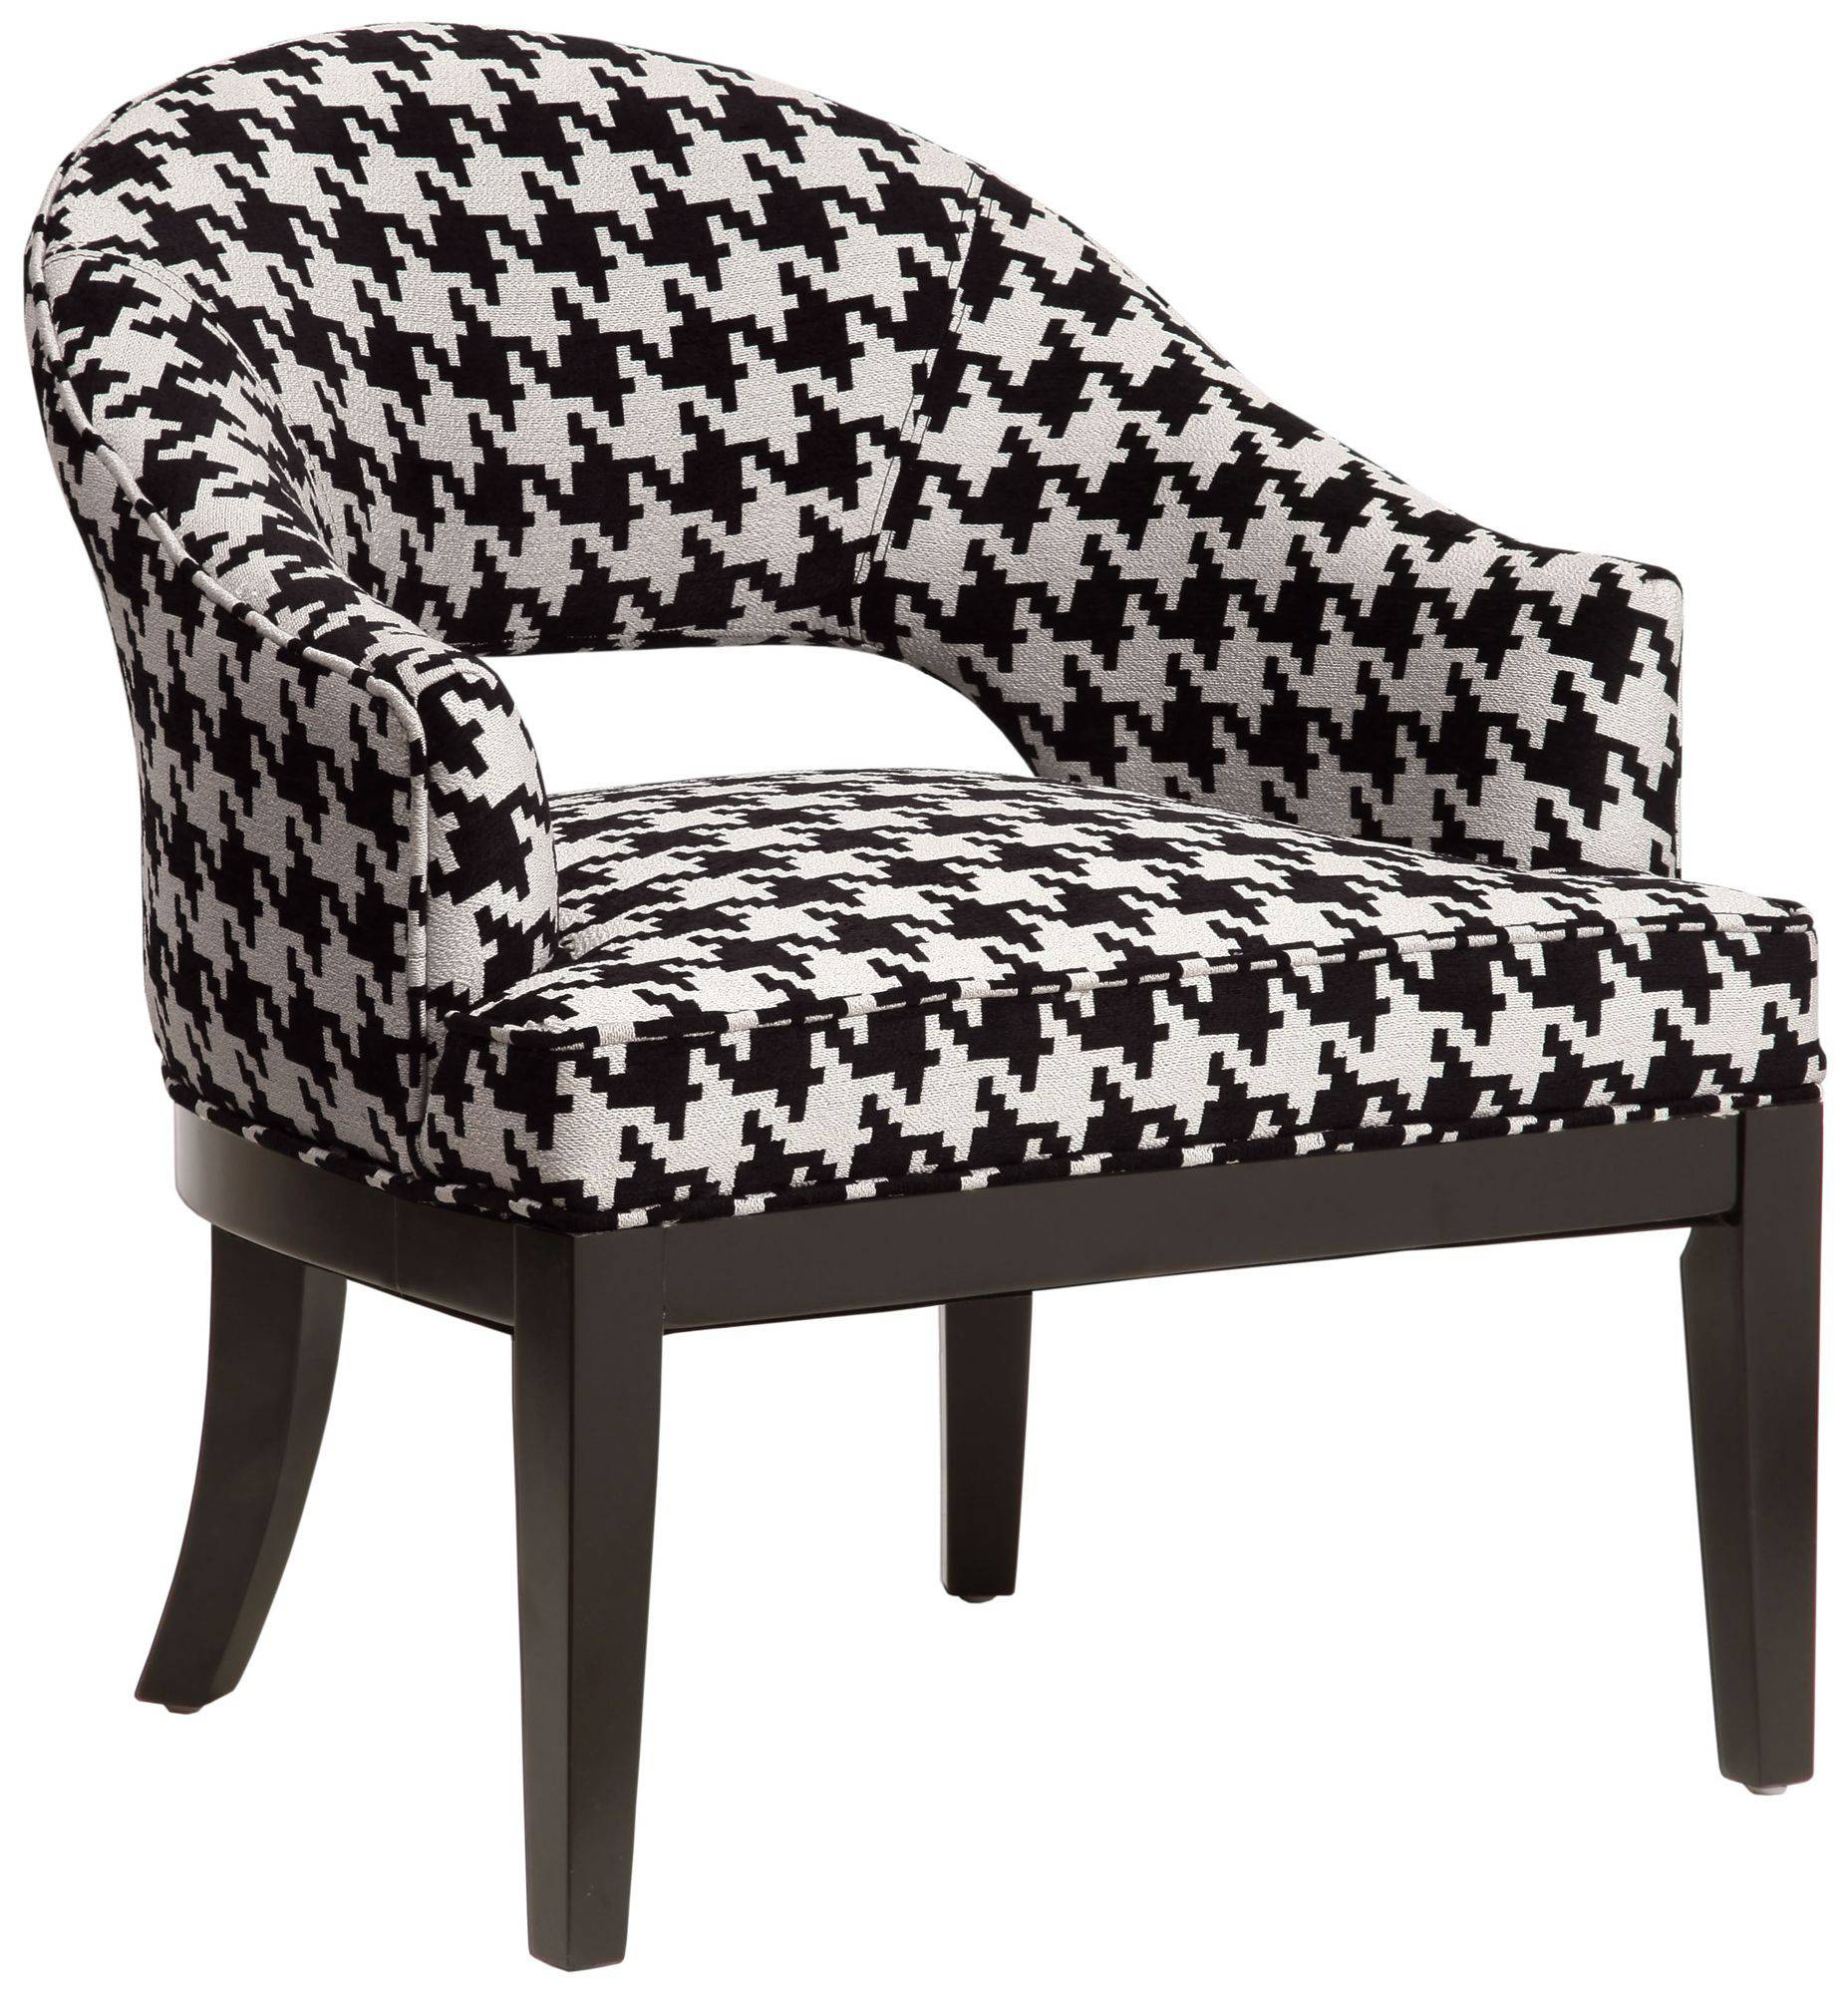 This oversized houndstooth print gives the Crystal Keltic Oreo chair, found at lampsplus.com, a contemporary edge.